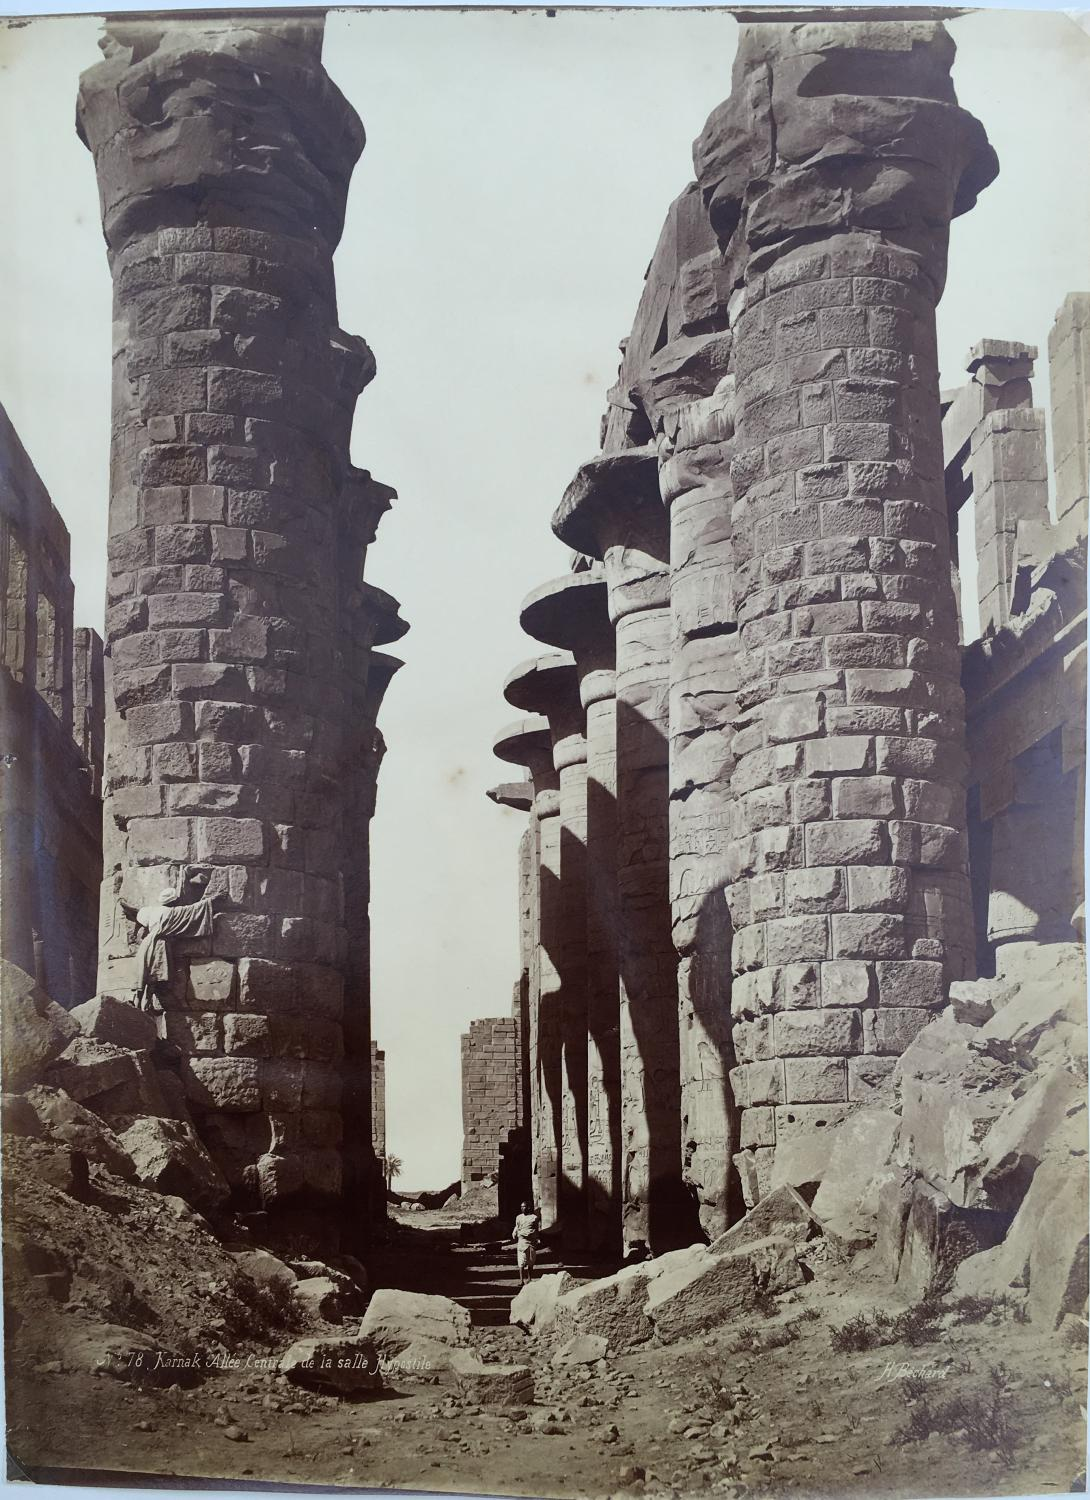 Karnak Egypt By Henri Bechard C1860-70